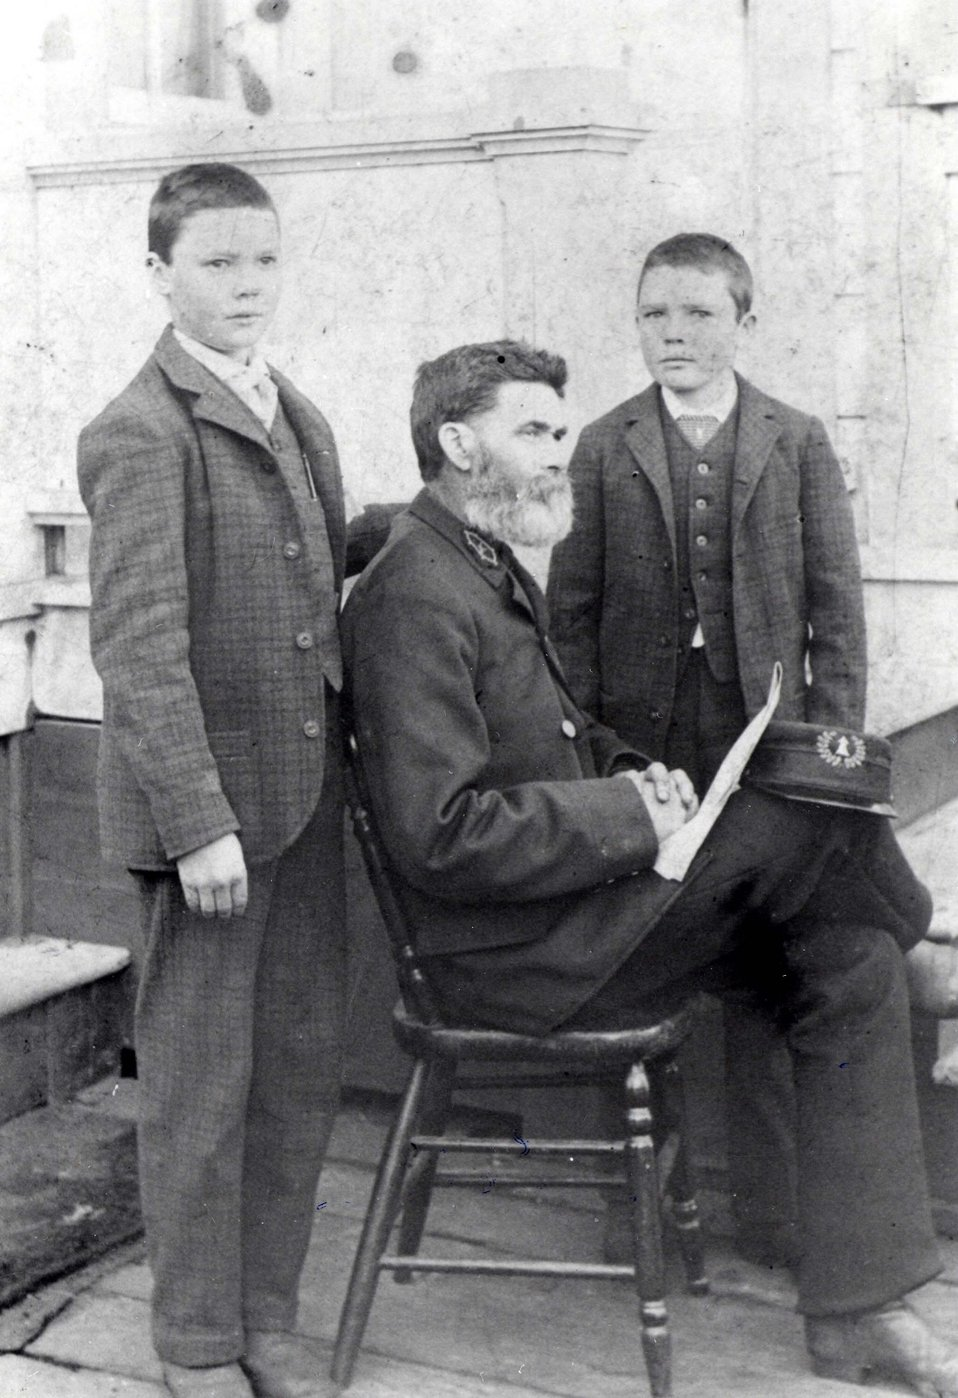 No Image Description Available